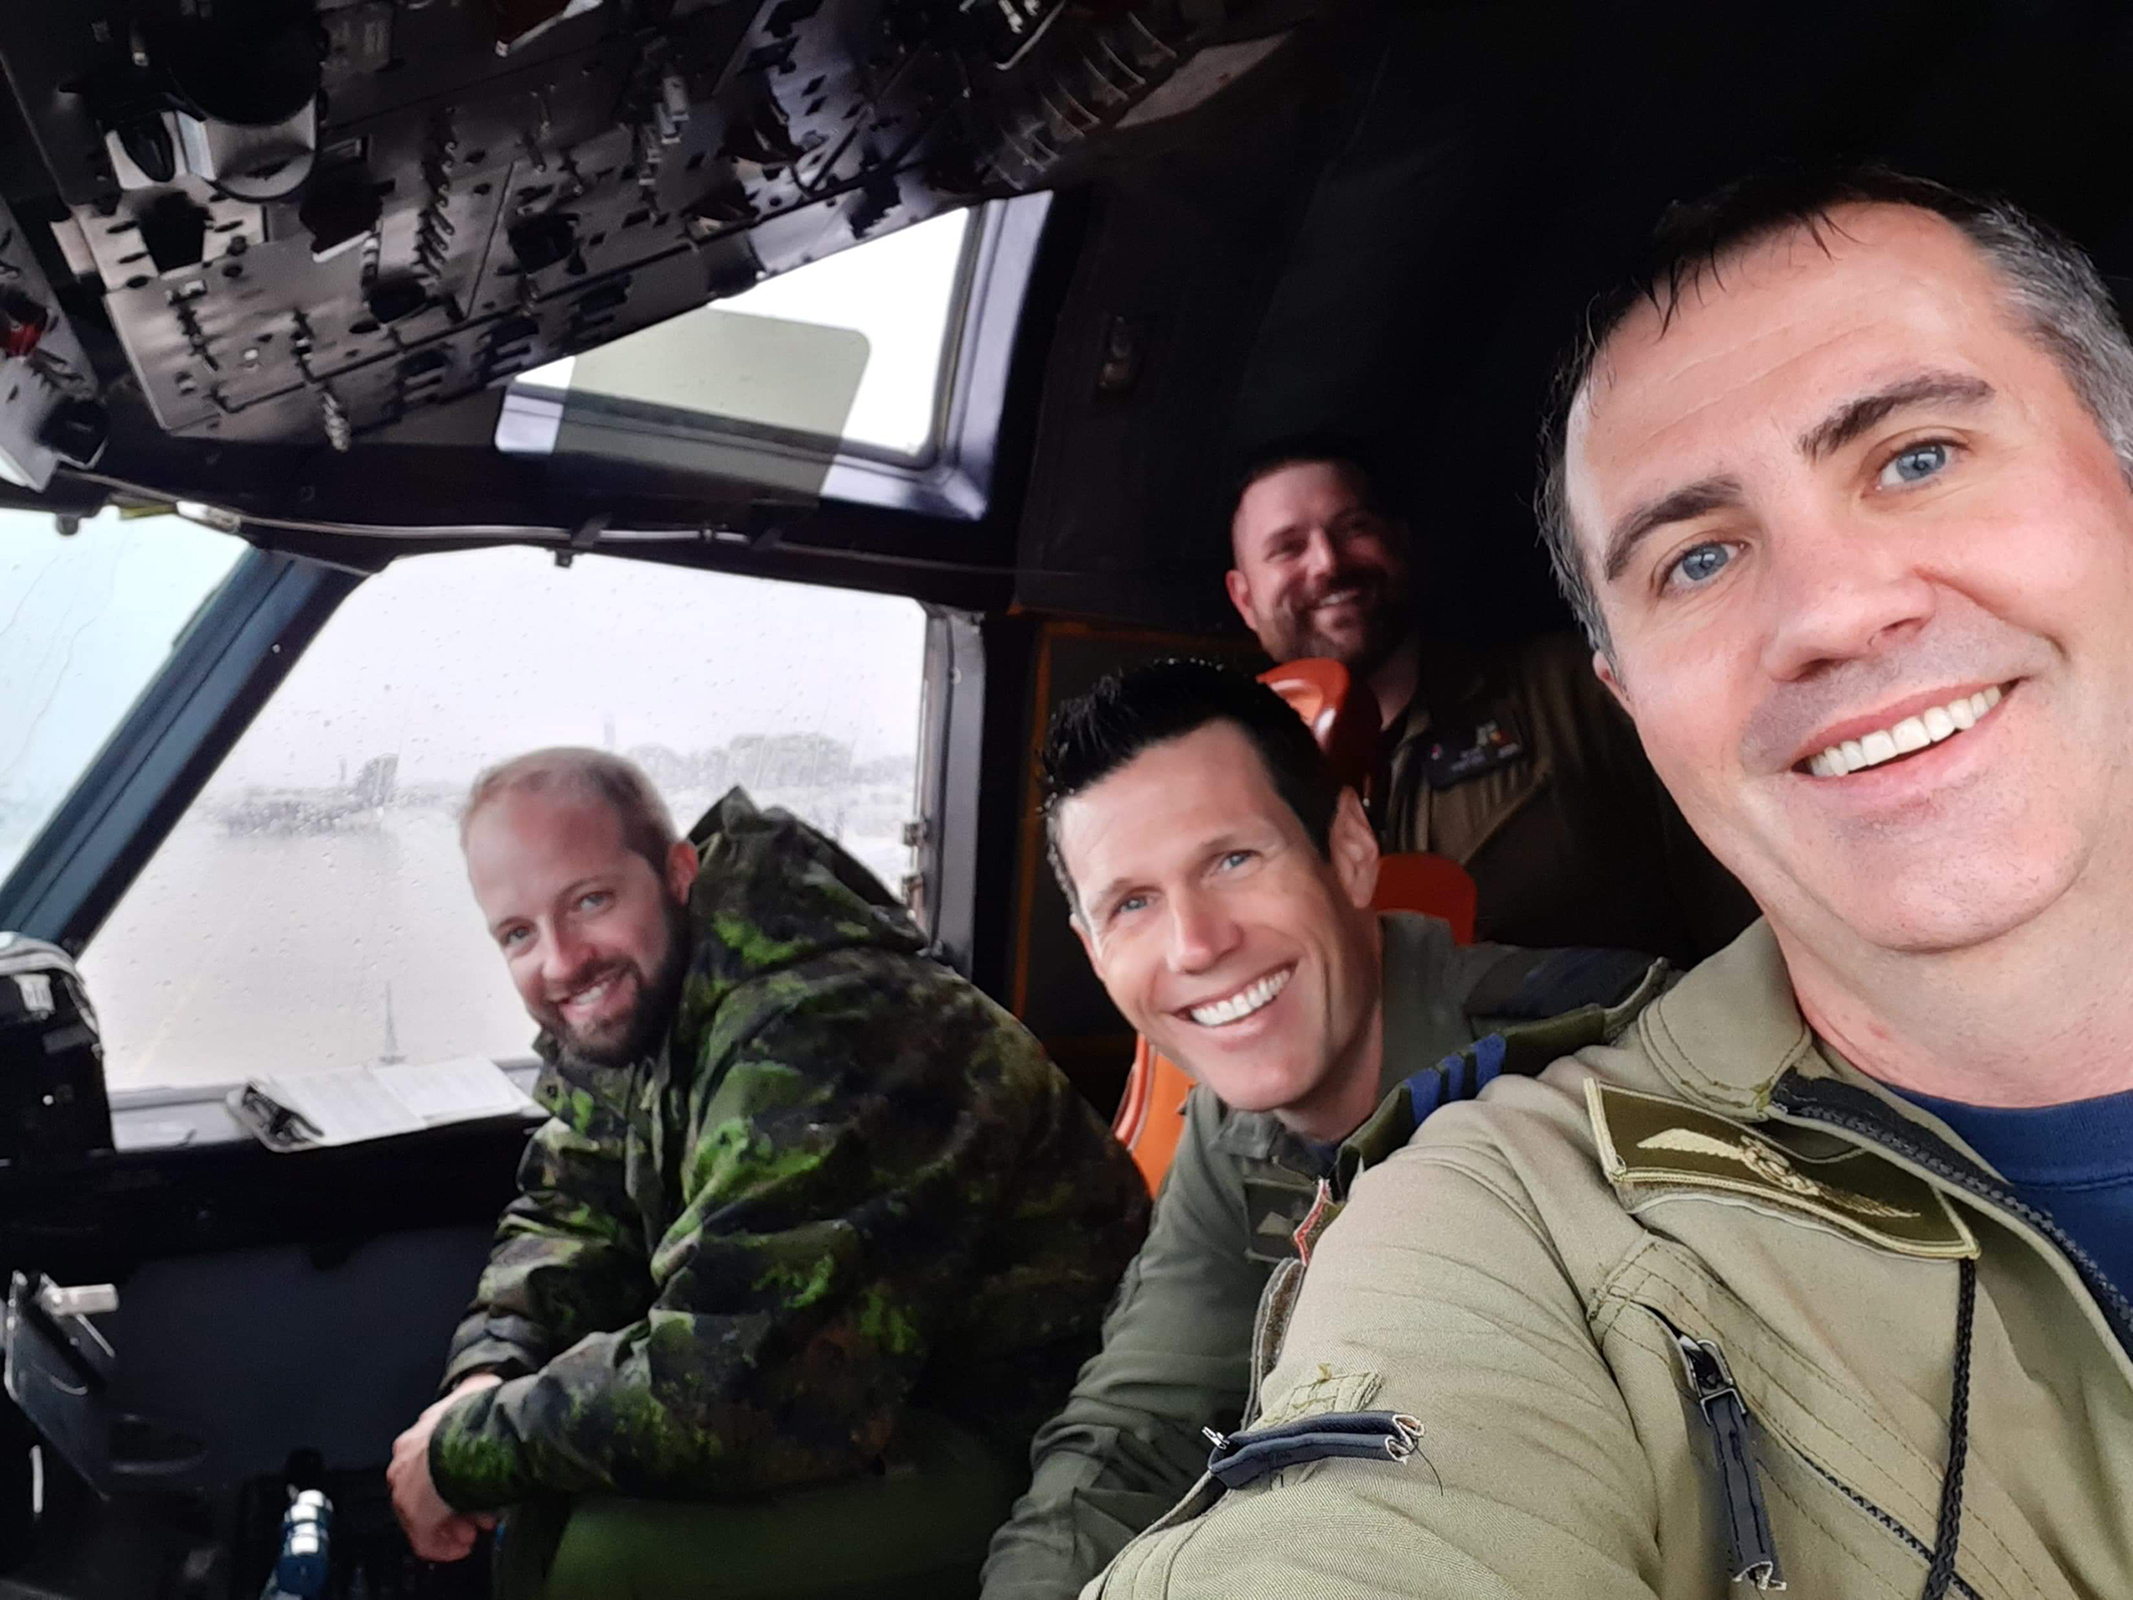 Four military persons inside an aircraft cockpit.